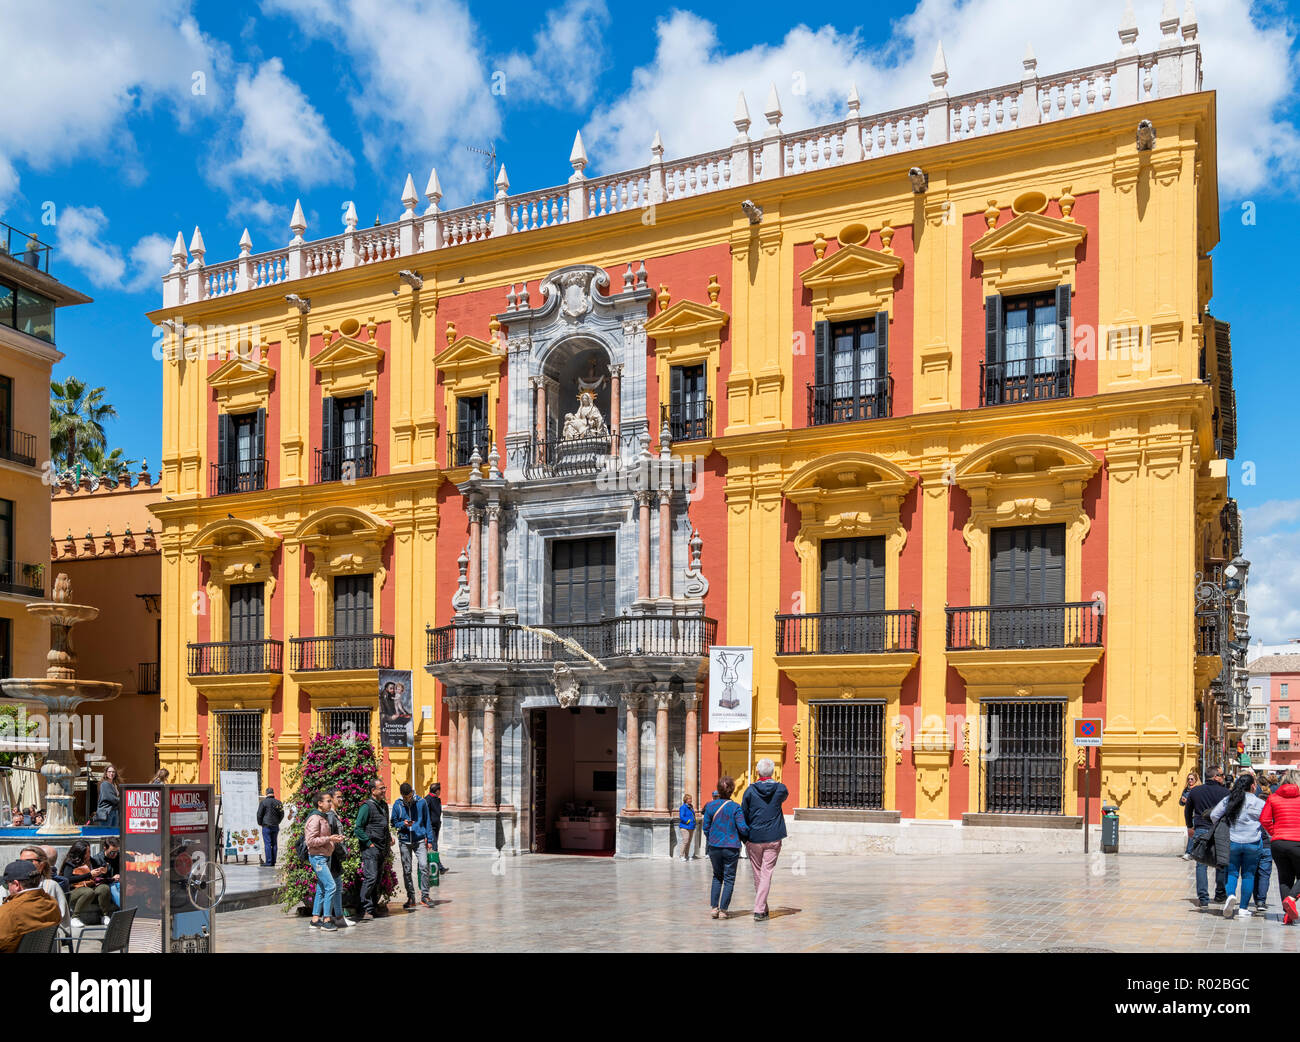 The Palacio Episcopal (Bishop's Palace), which houses a small museum, Plaza del Obispo, Old Town, Malaga, Costa del Sol, Andalucia, Spain - Stock Image